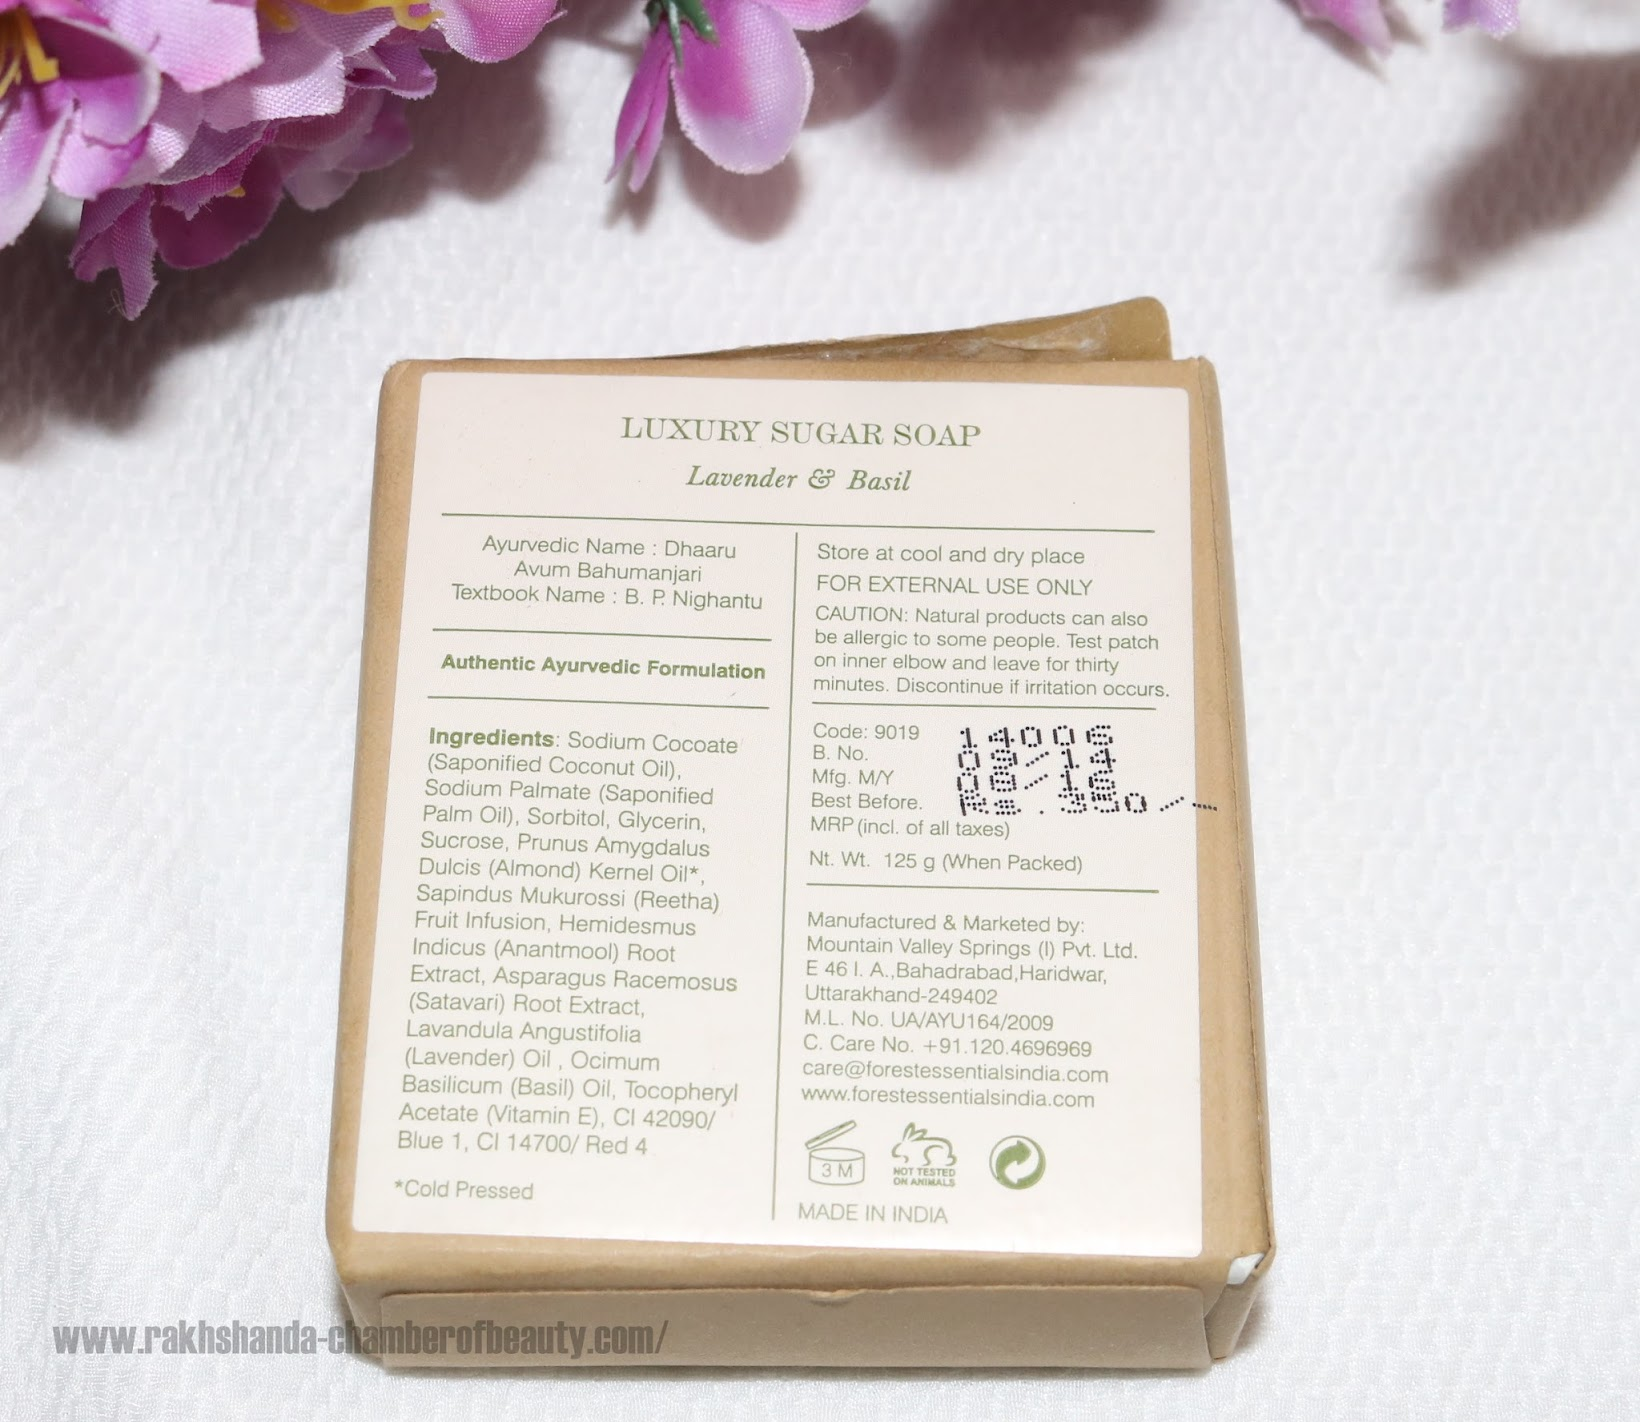 Forest Essentials Luxury Sugar Soap Lavender & Basil review